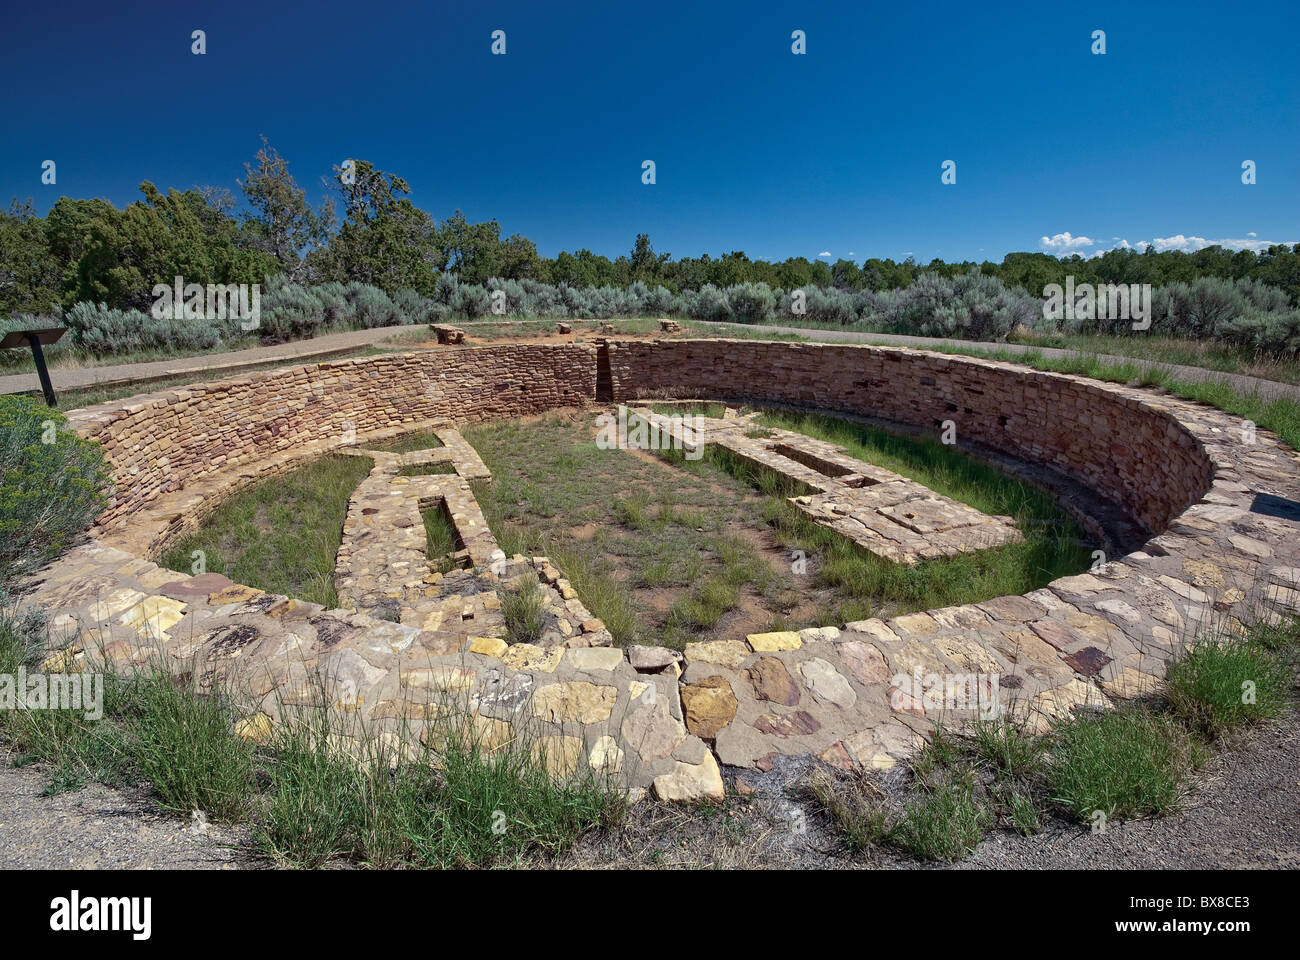 The Great Kiva at Lowry Pueblo at Canyons of the Ancients National Monument, Colorado, USA - Stock Image